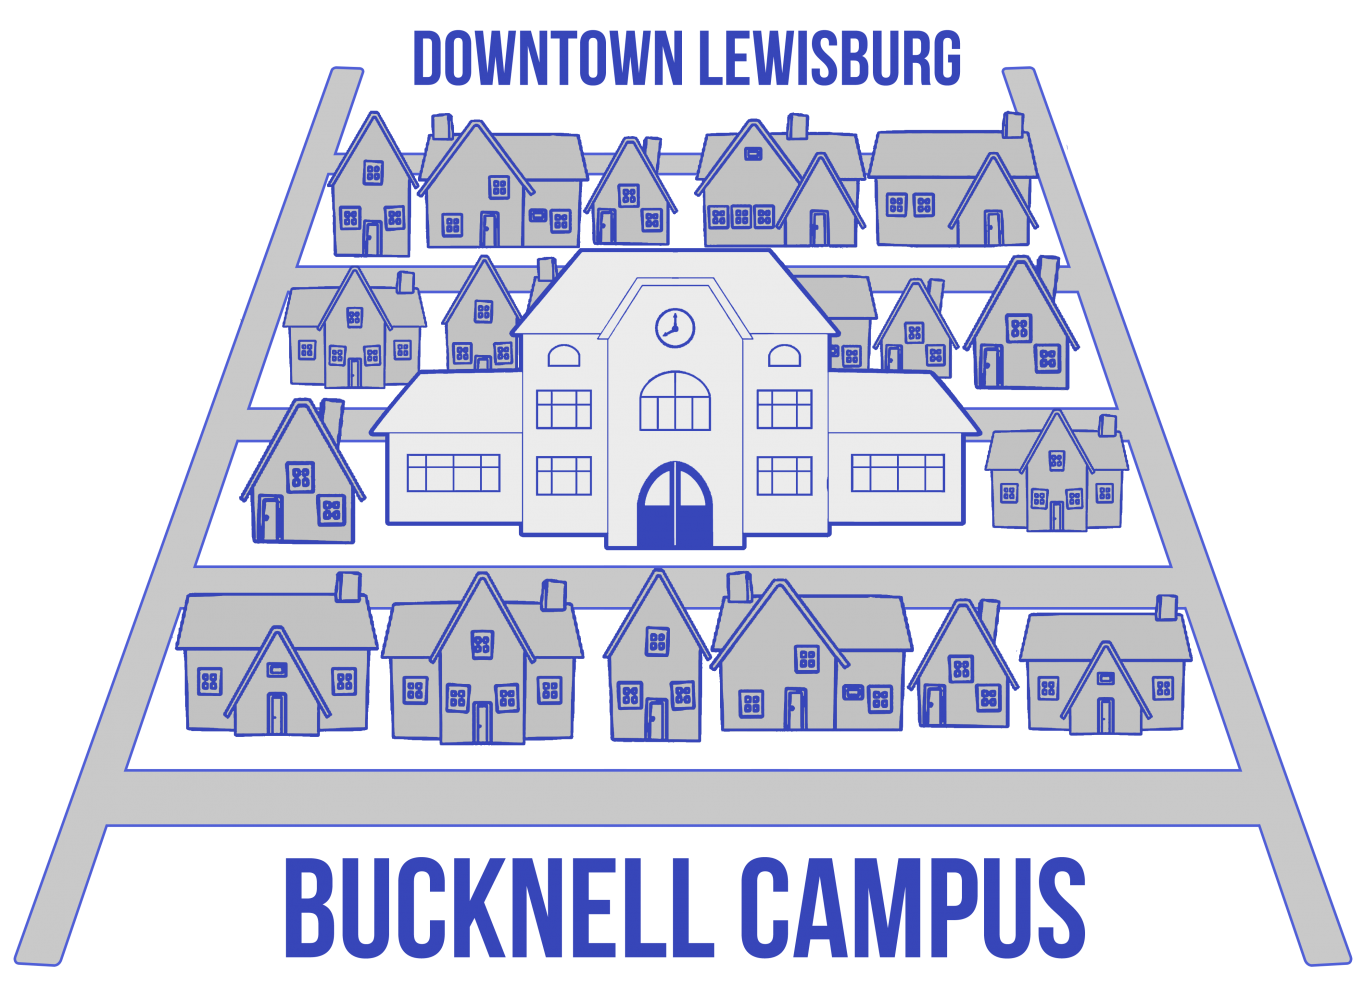 University+unveils+plans+for+Academic+North+by+Northwest+in+downtown+Lewisburg